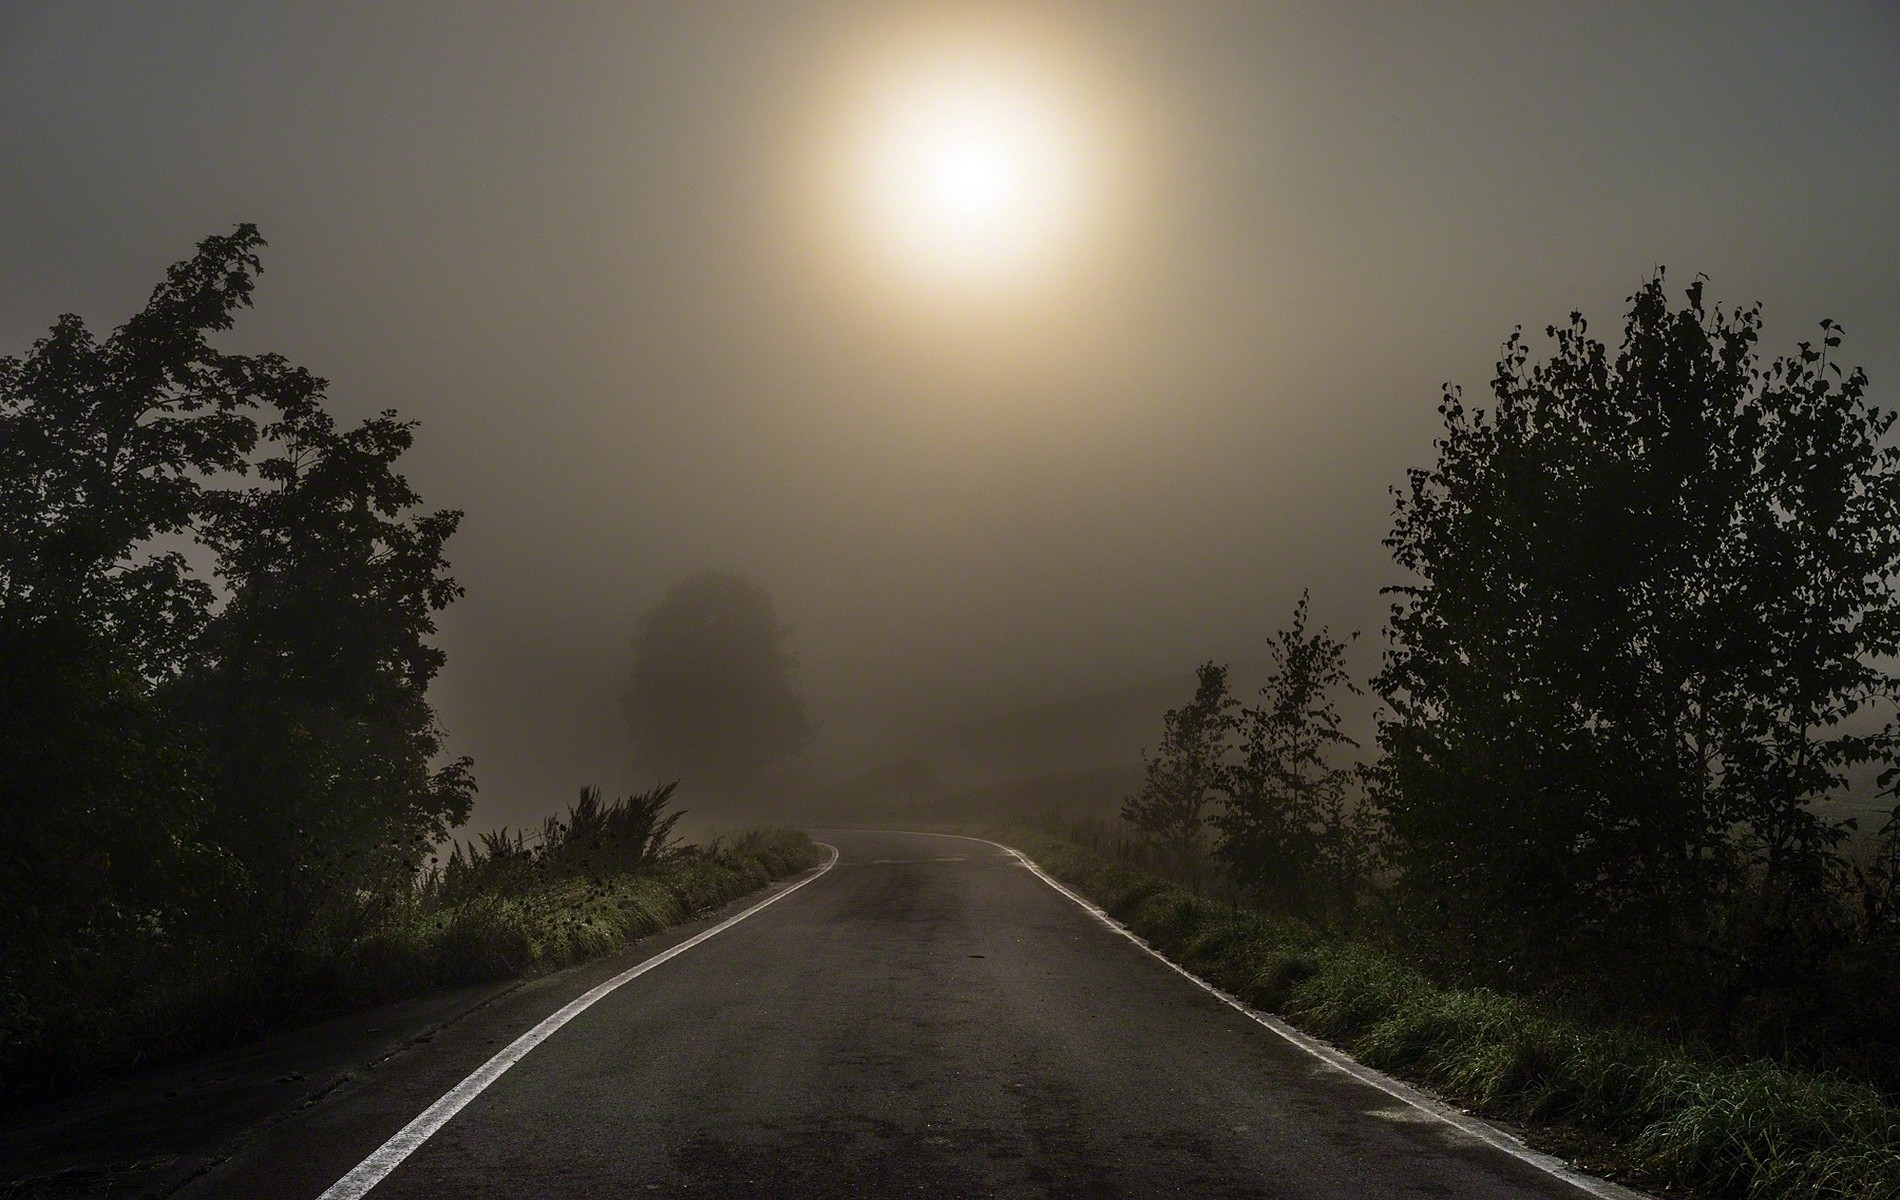 Funny Hd Animal Wallpapers Nature Landscape Mist Morning Road Trees Dark